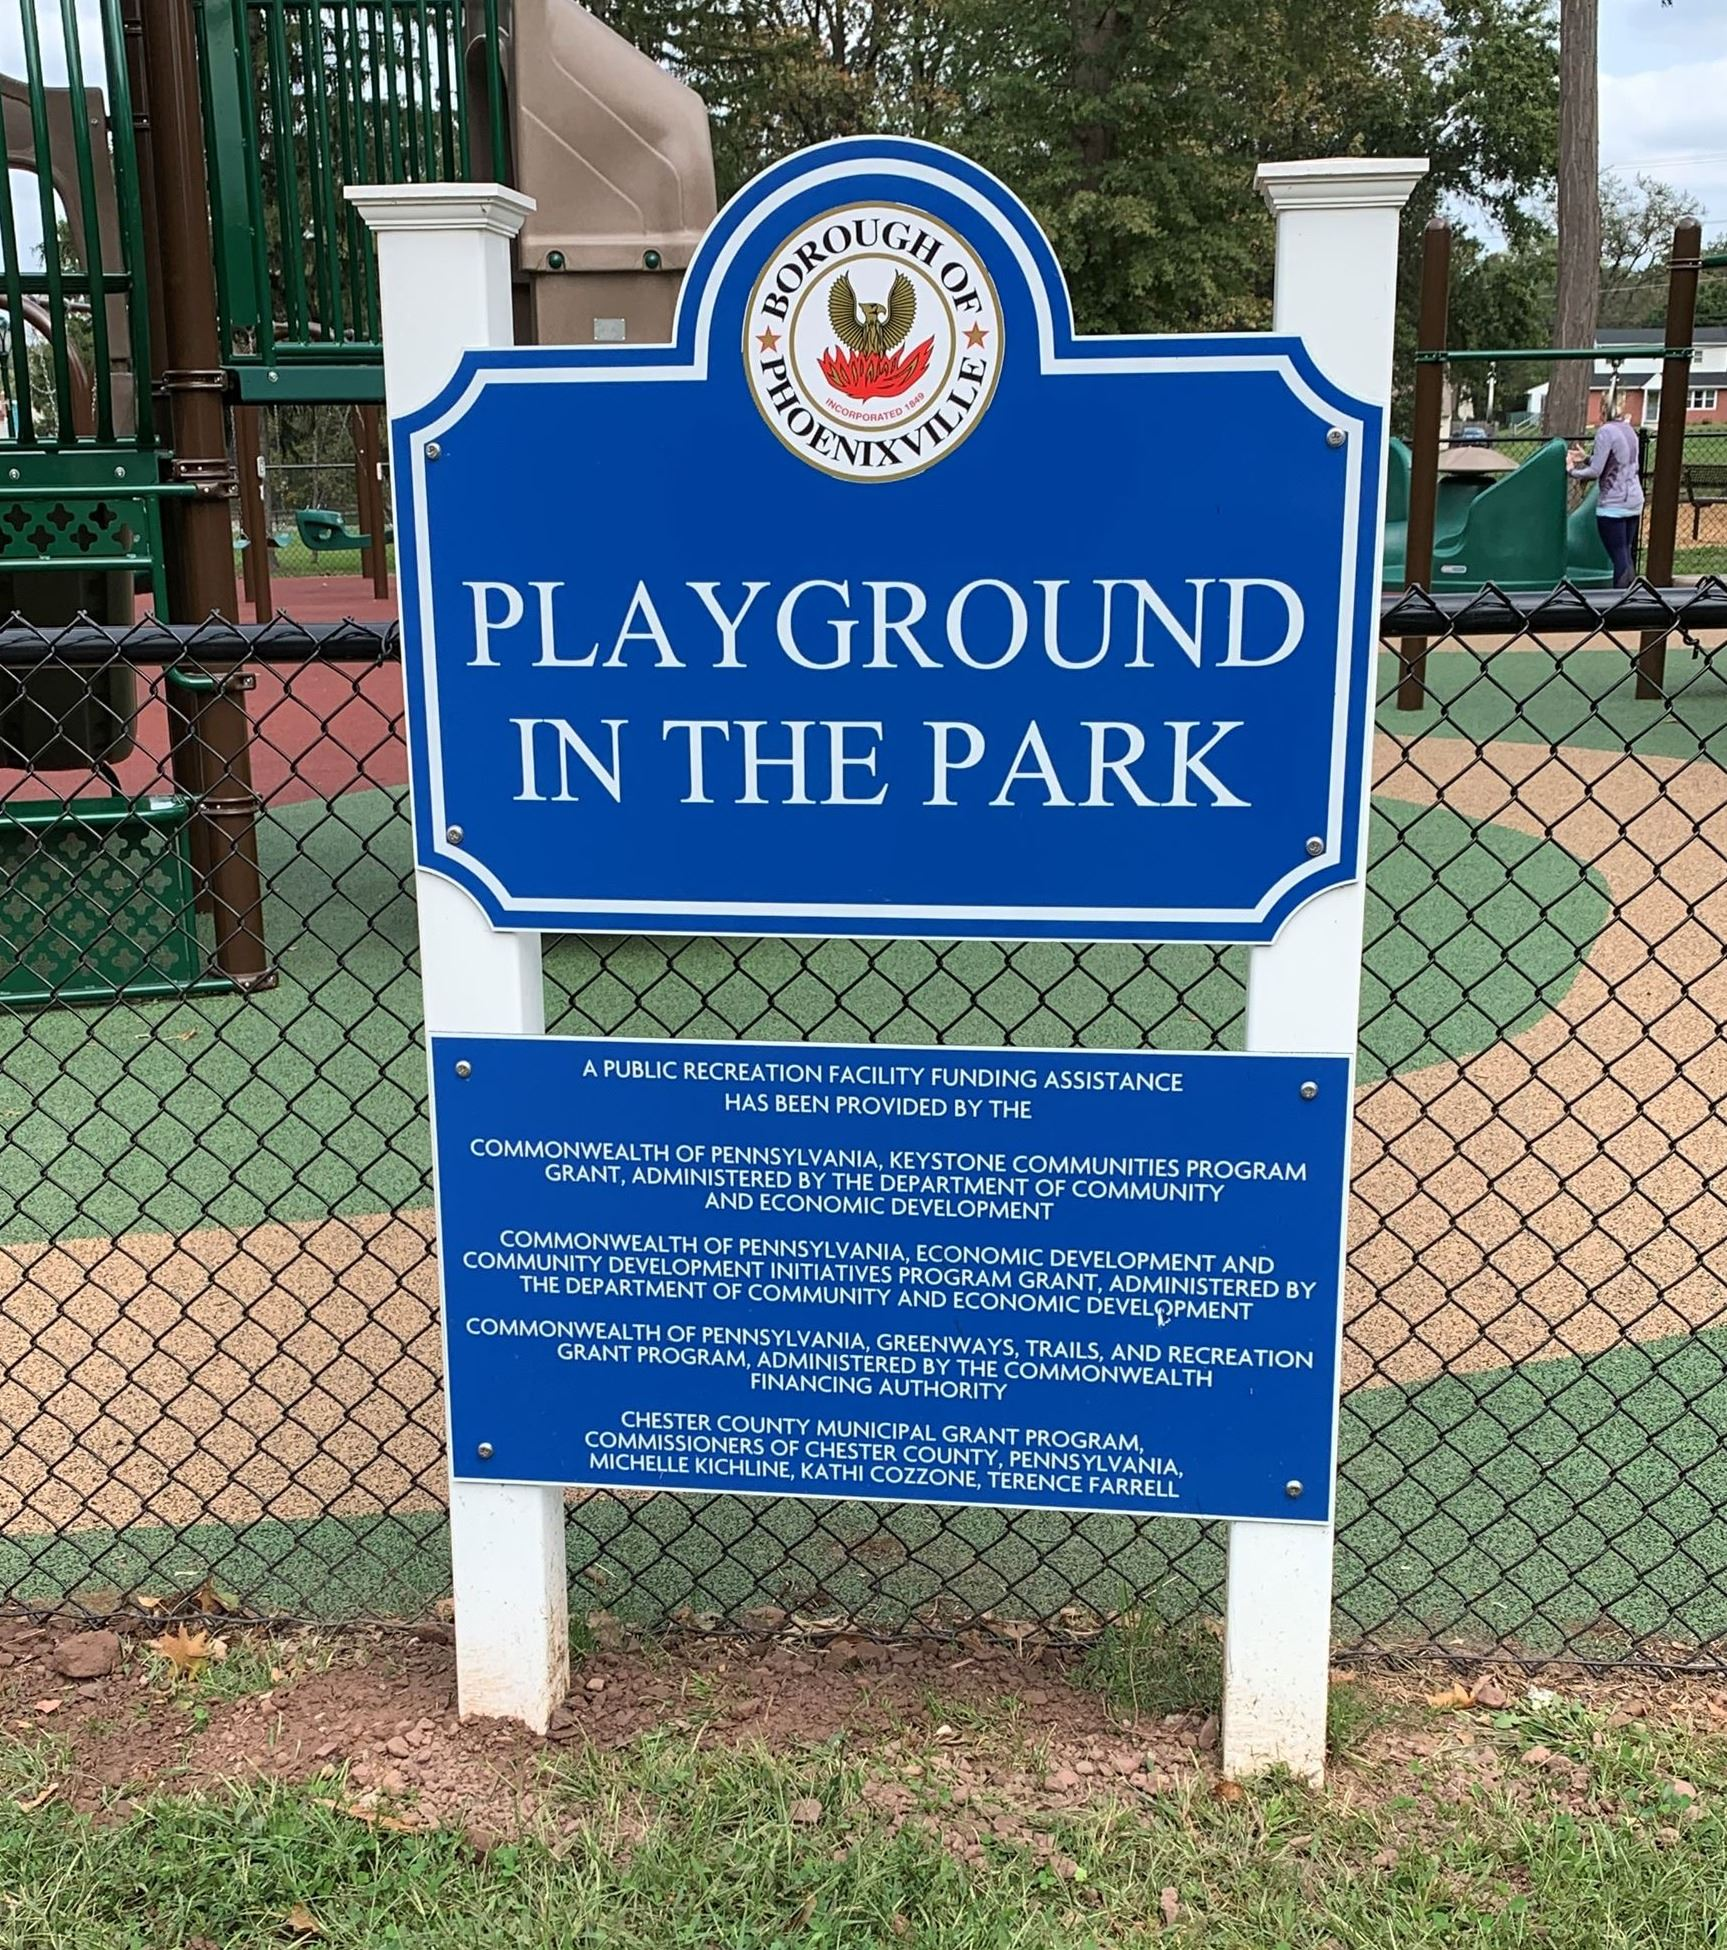 Playground in the Park Sign